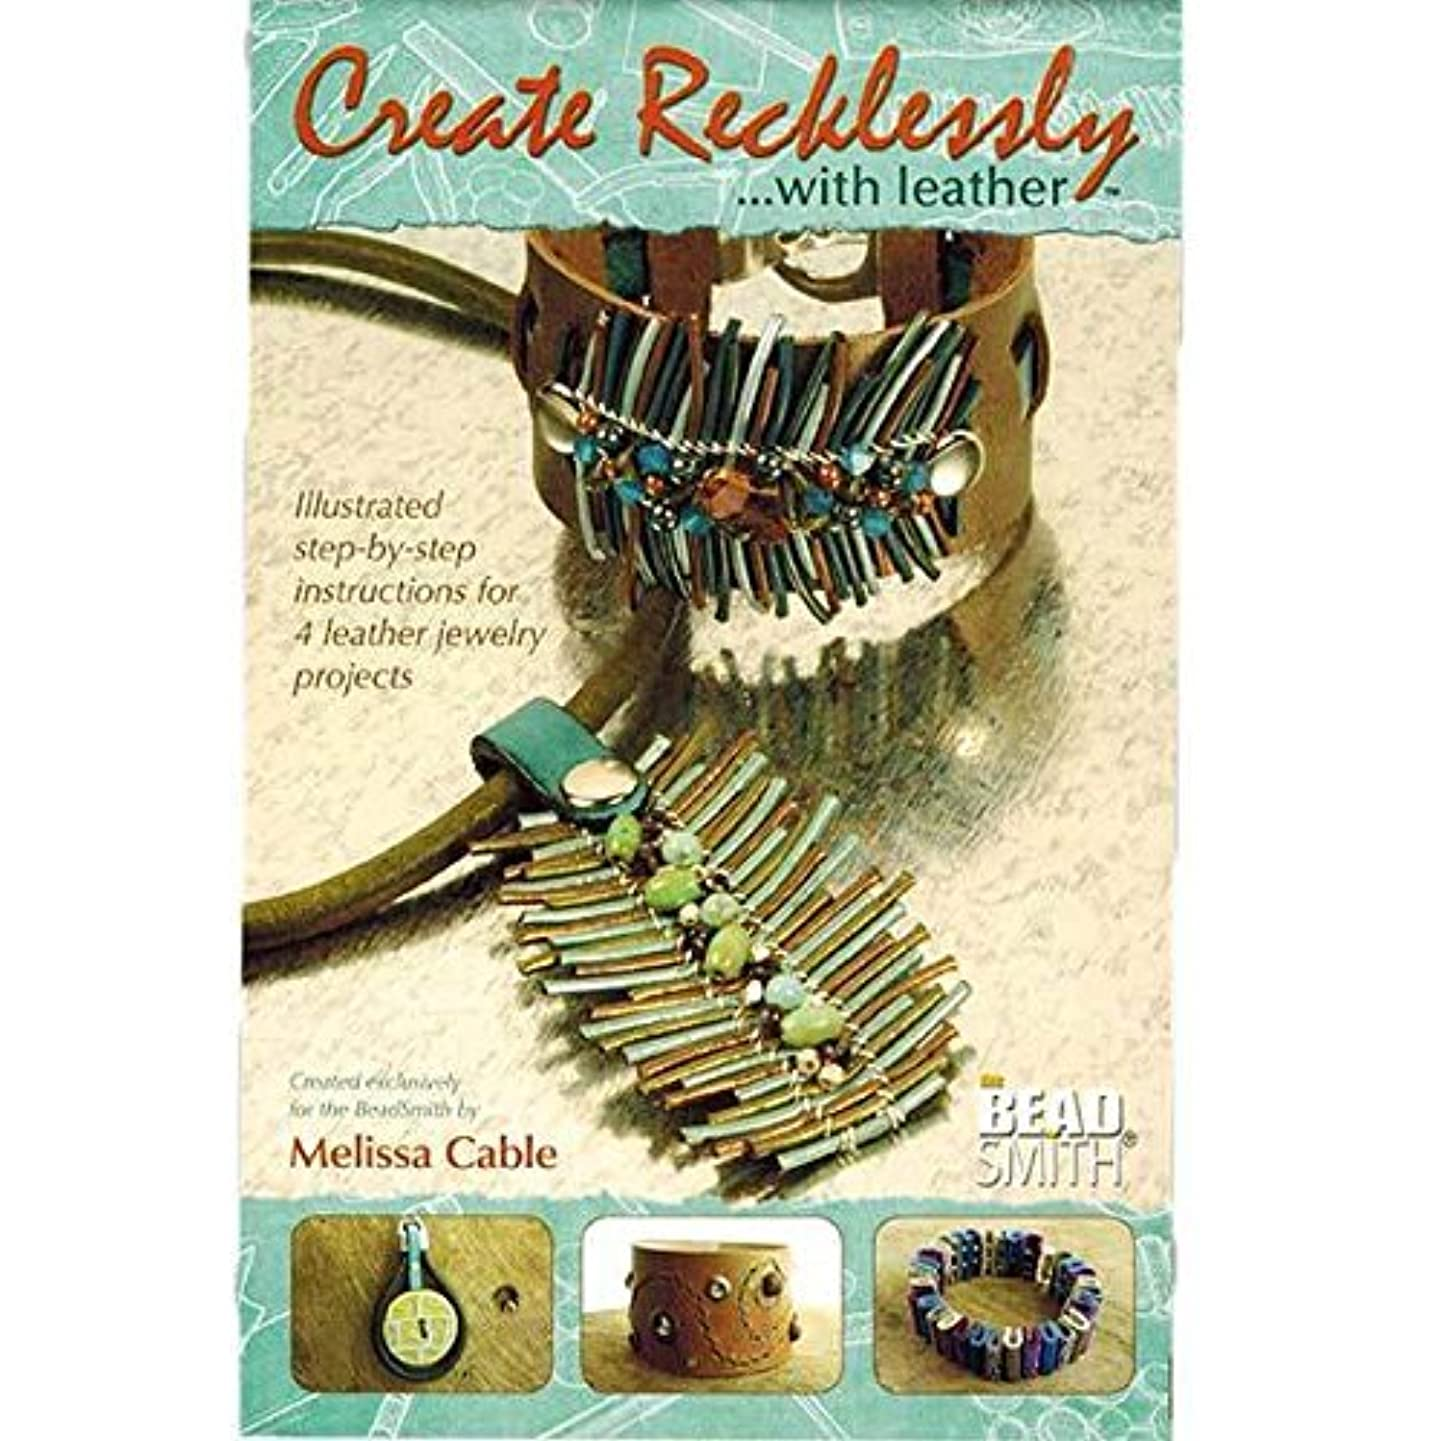 Create Recklessly Booklet, 24 pages by Melissa Cable